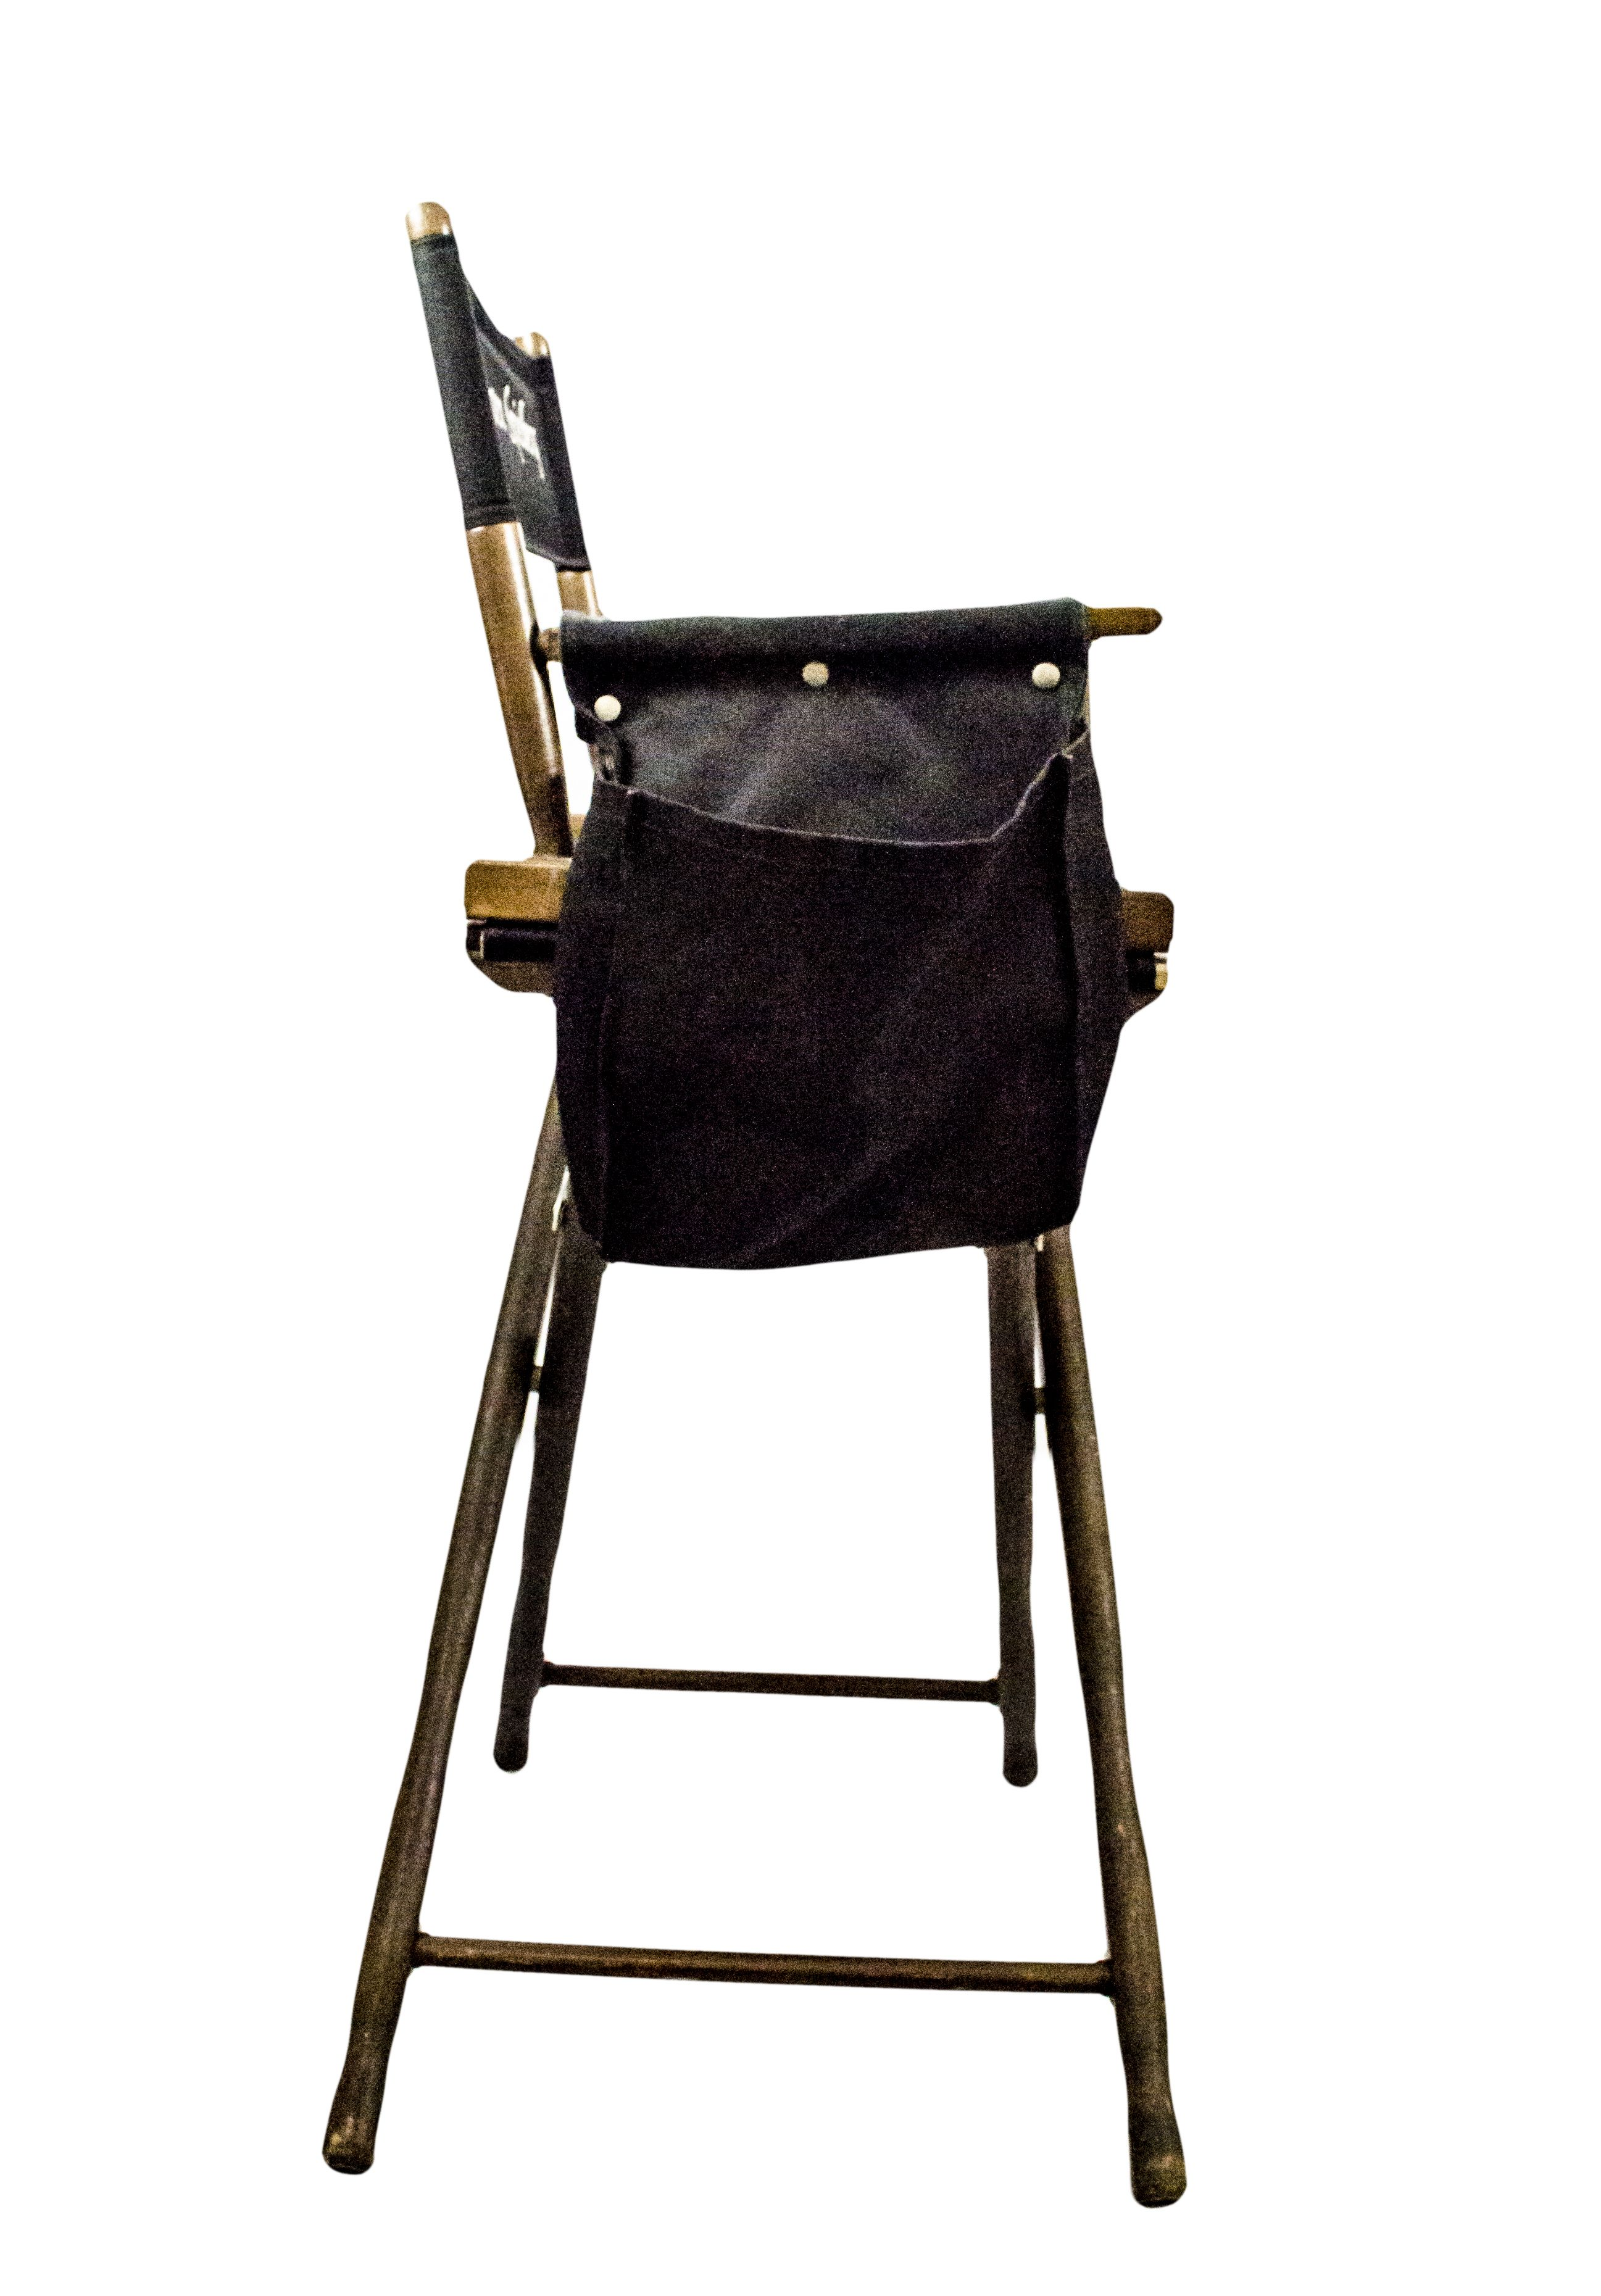 best folding chair kitchen cushions non slip lot detail - steven spielberg directors for the movie amistad